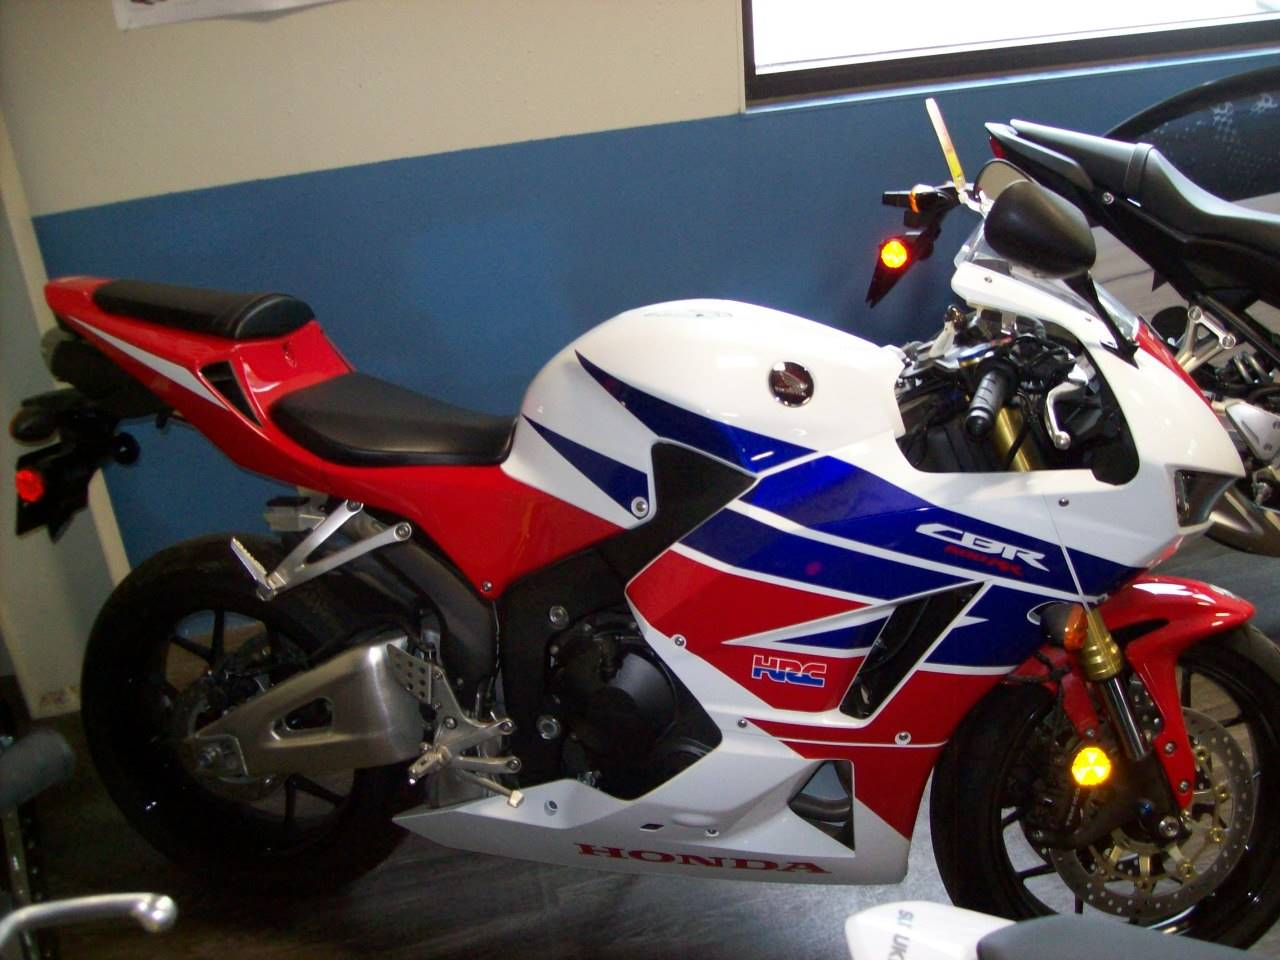 Used 2014 Honda CBR®600RR Motorcycles in Wisconsin Rapids, WI ...